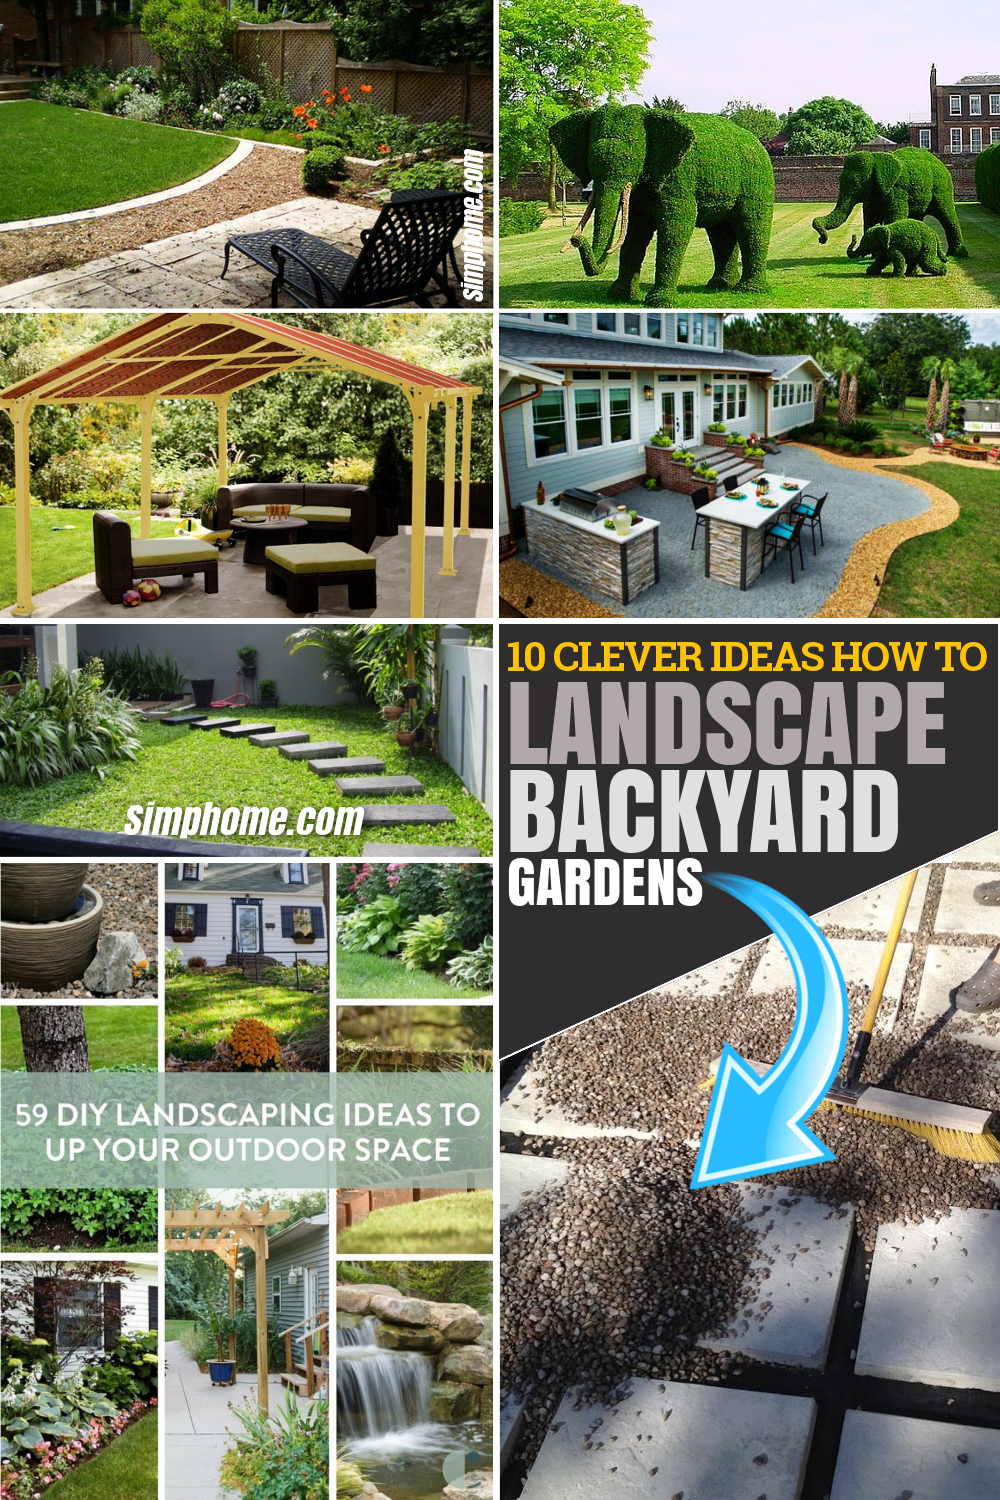 10 Clever Diy Ideas How To Landscape Backyard Garden Simphome